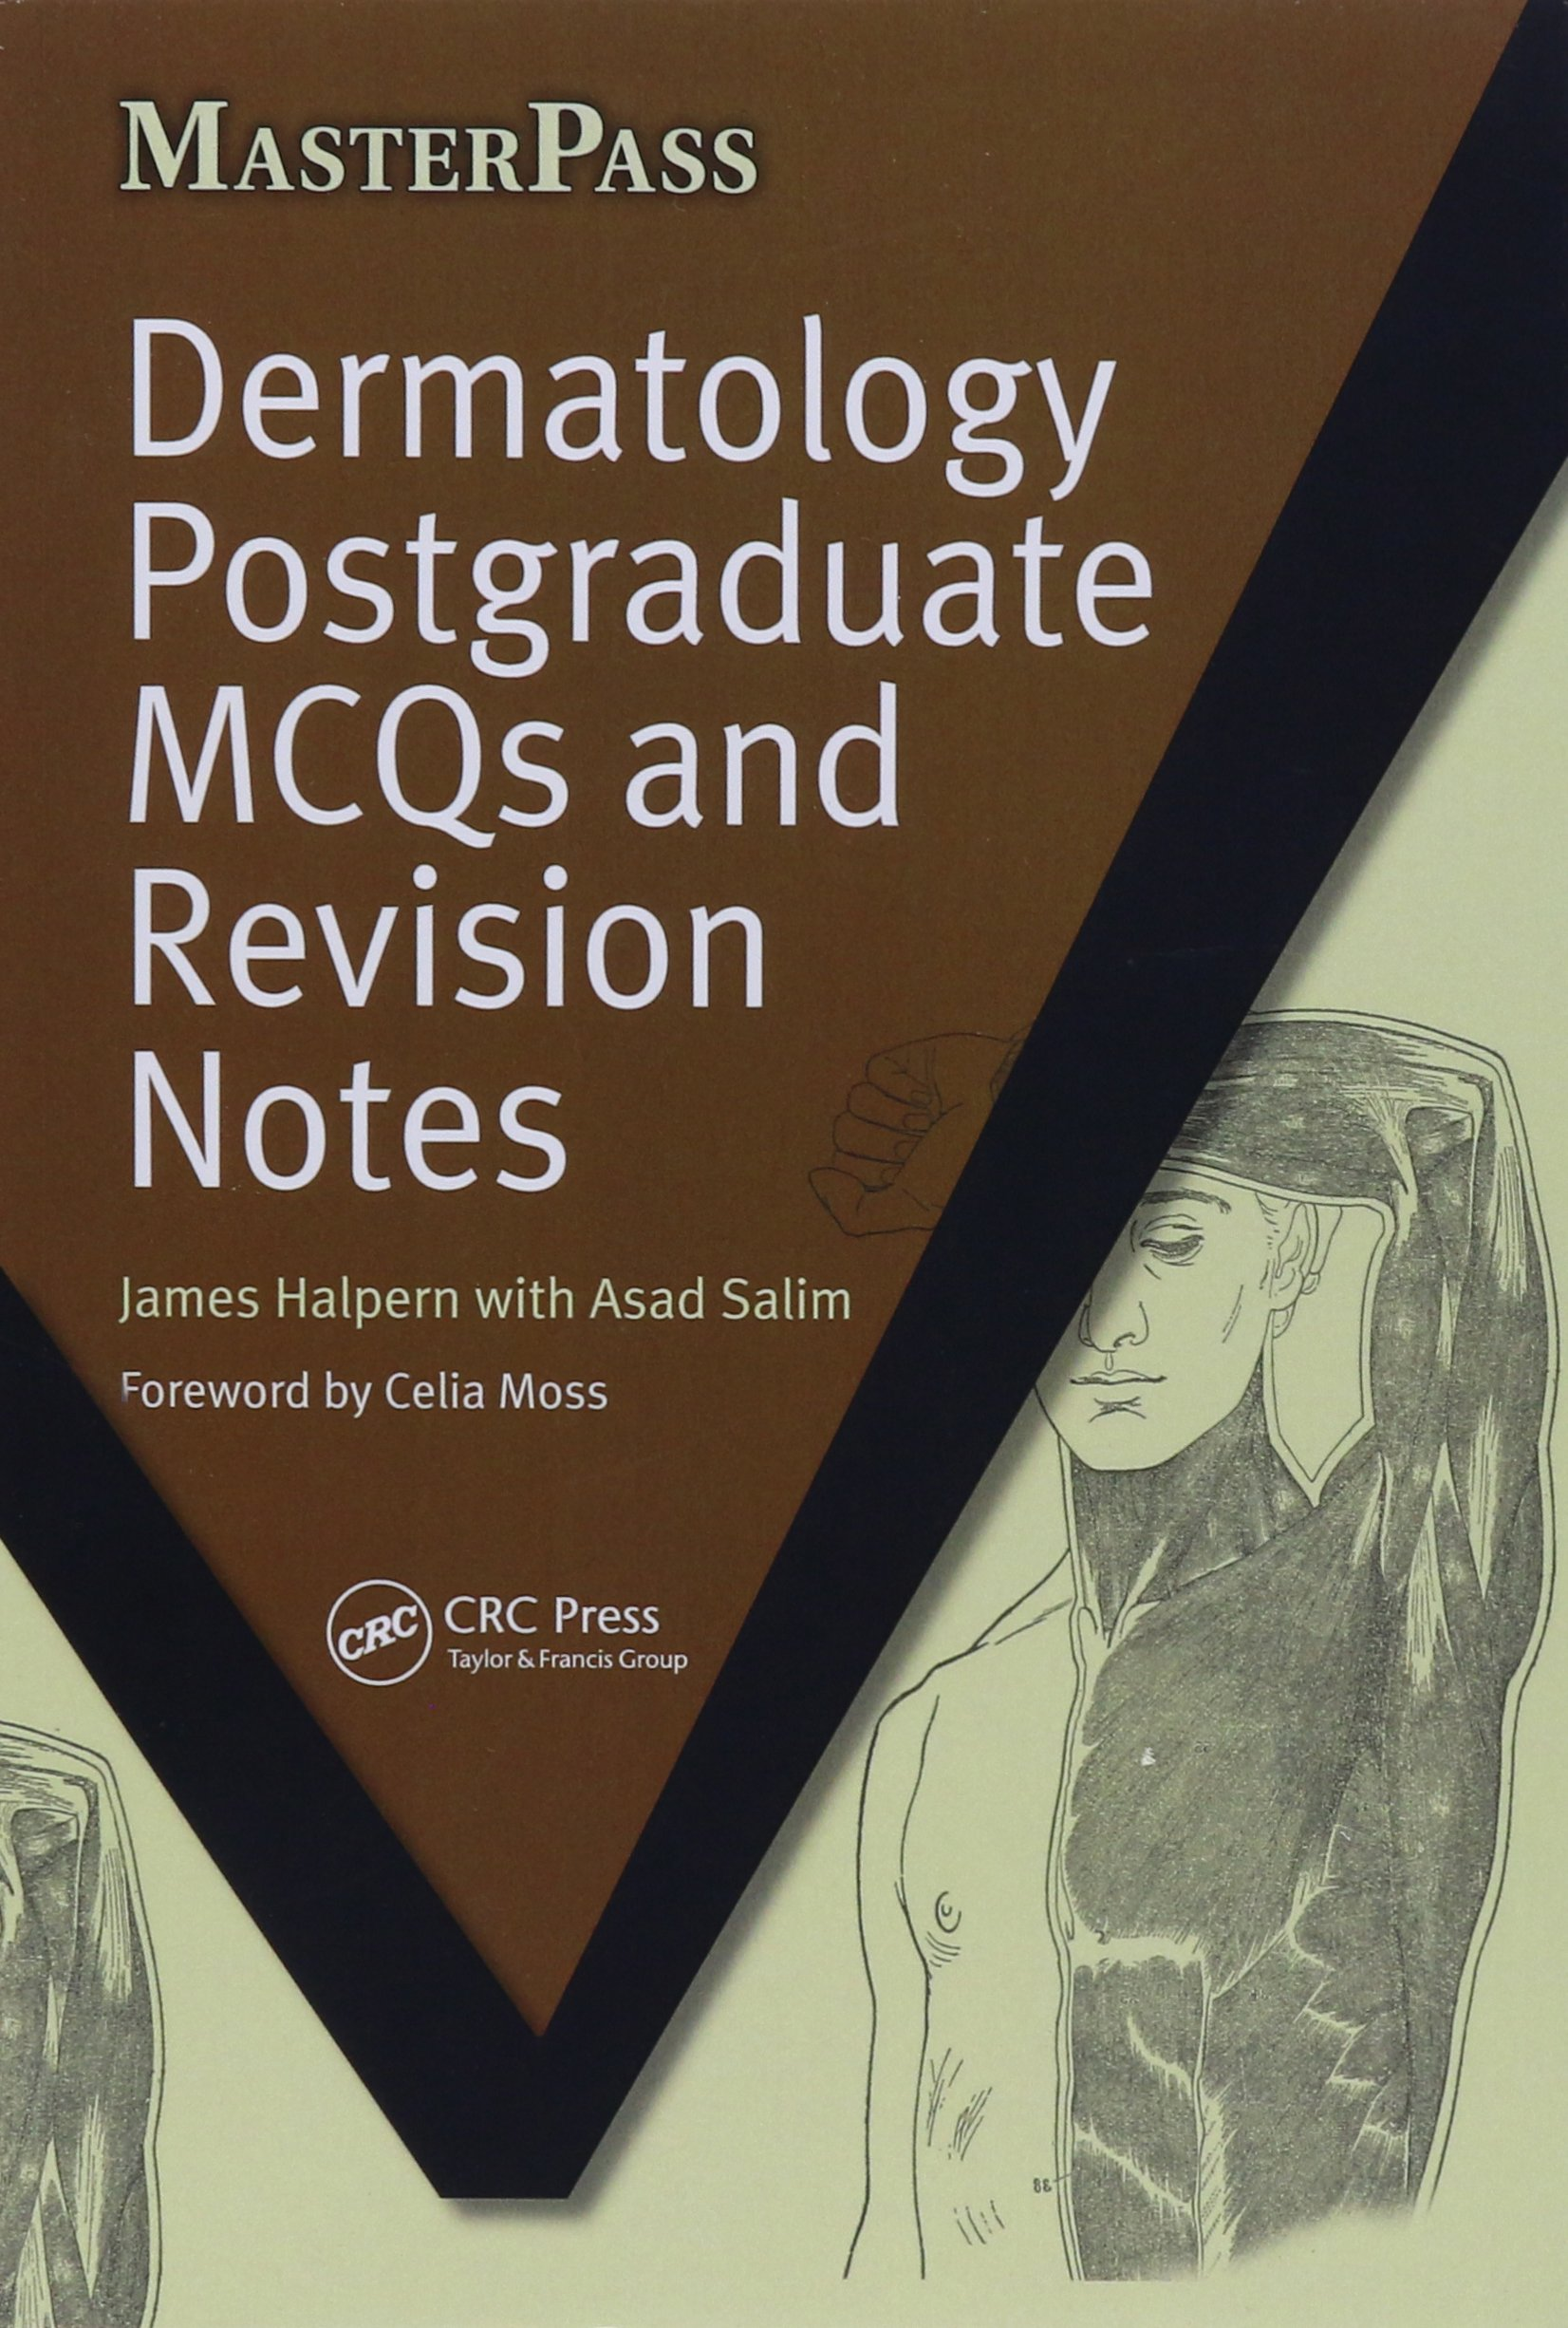 Dermatology Postgraduate MCQs and Revision Notes (MasterPass)